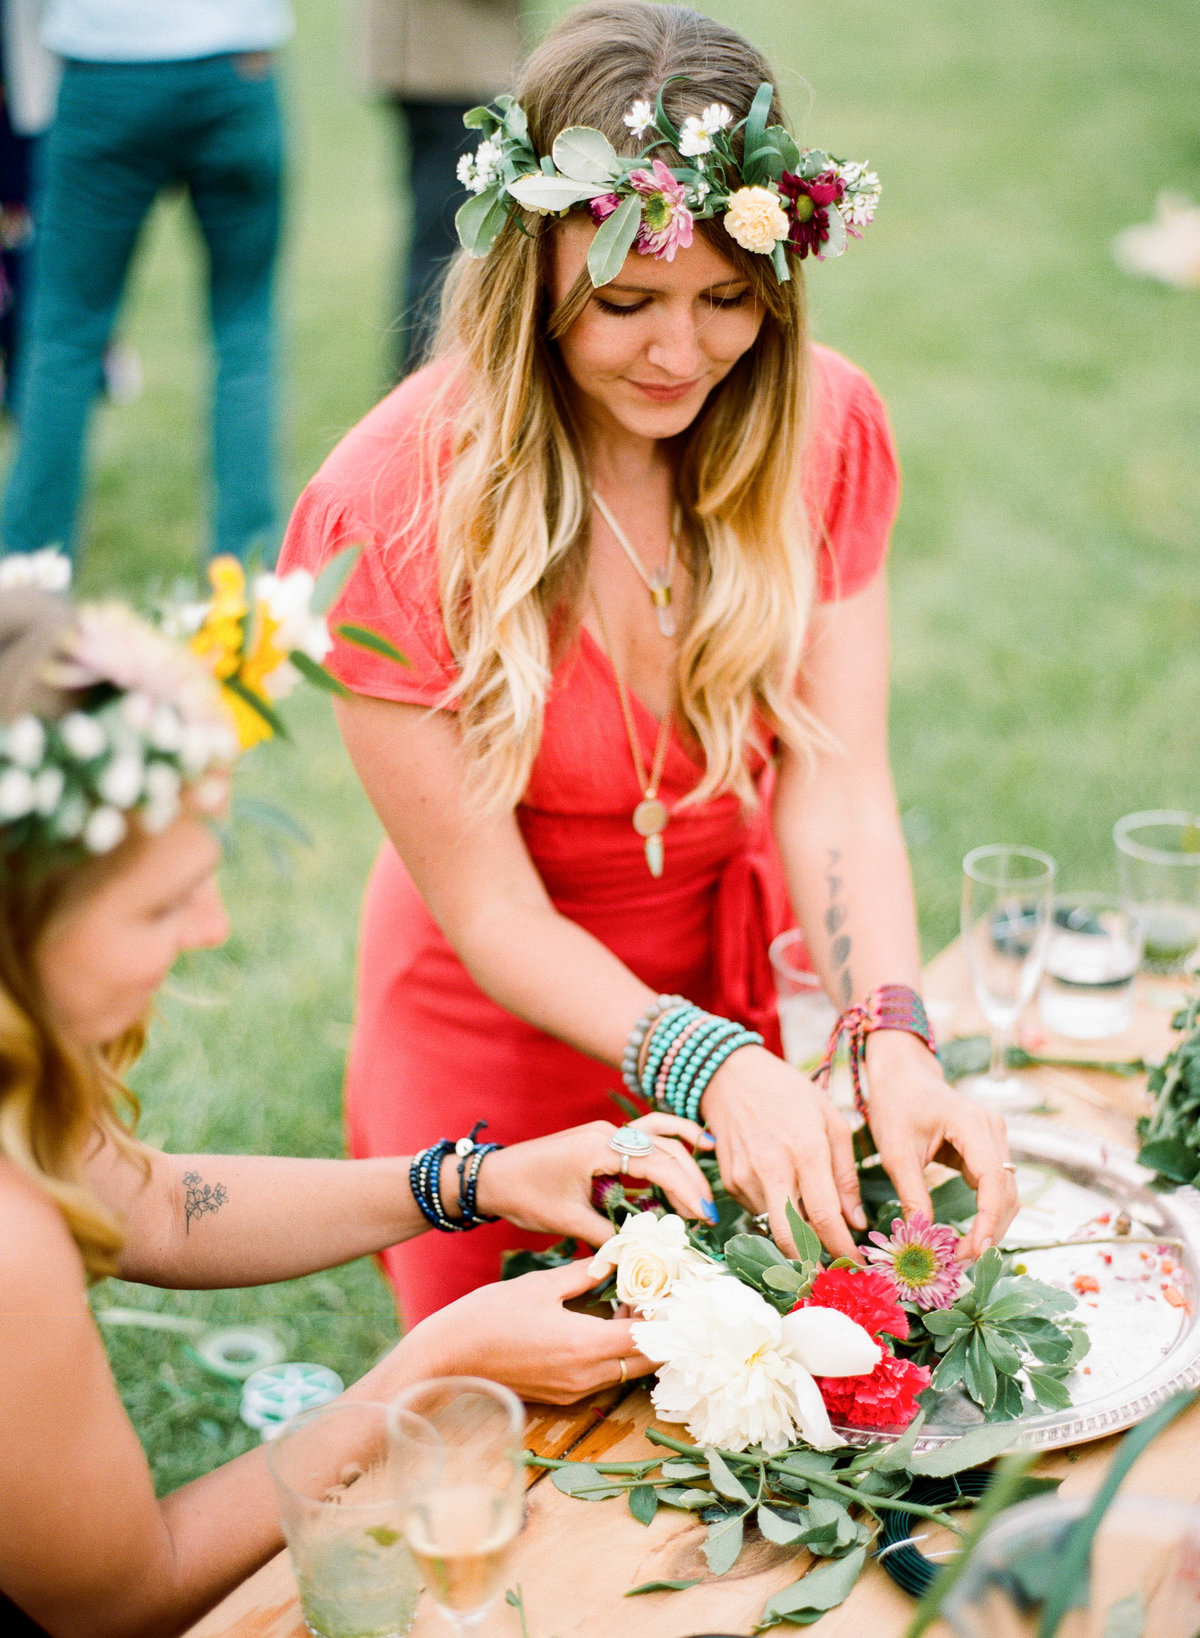 boho girl making flower crowns at wedding